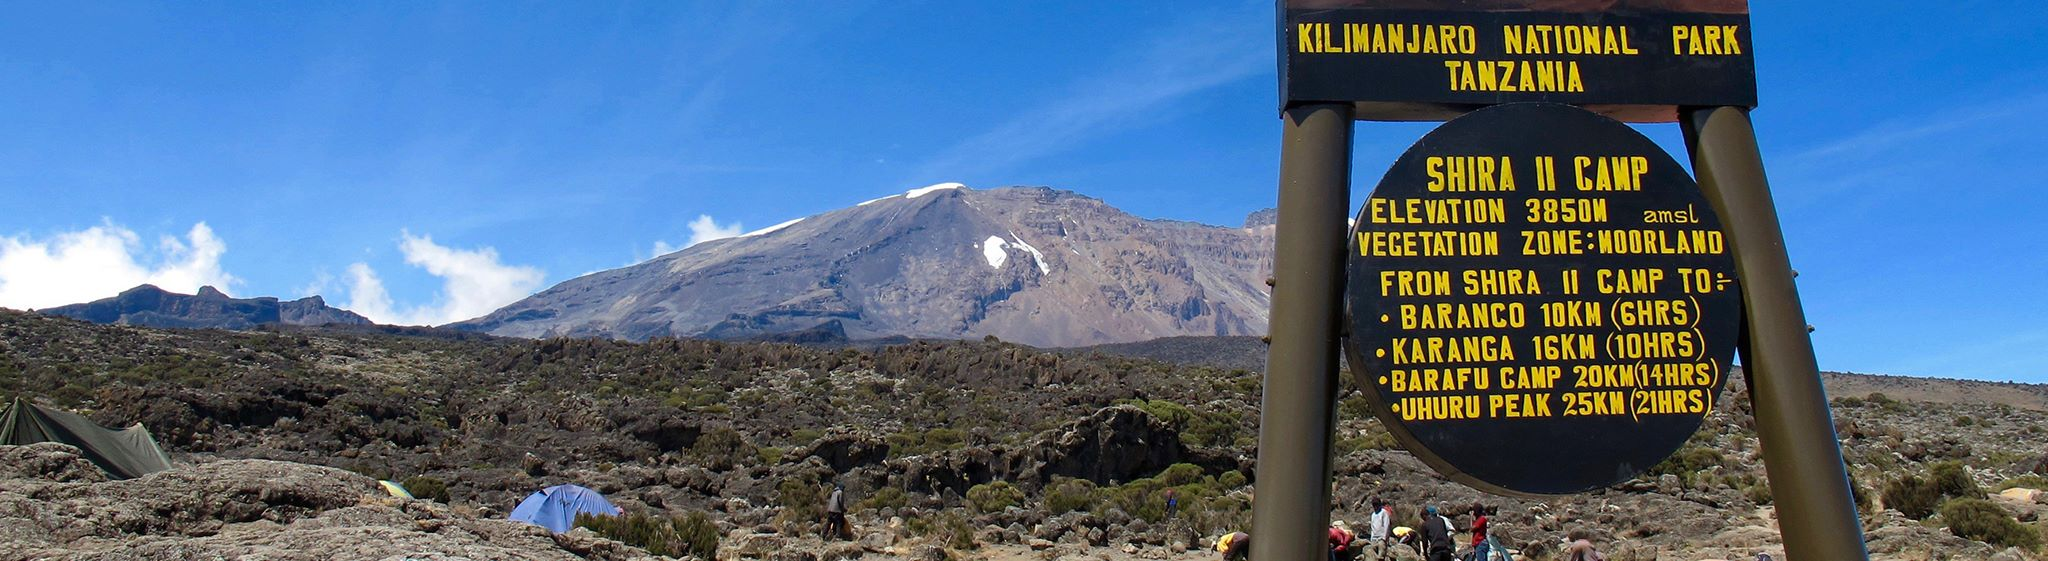 Kilimanjaro + Zanzibar via Lemosho Route - Safanta Tours & Travel Company Limited